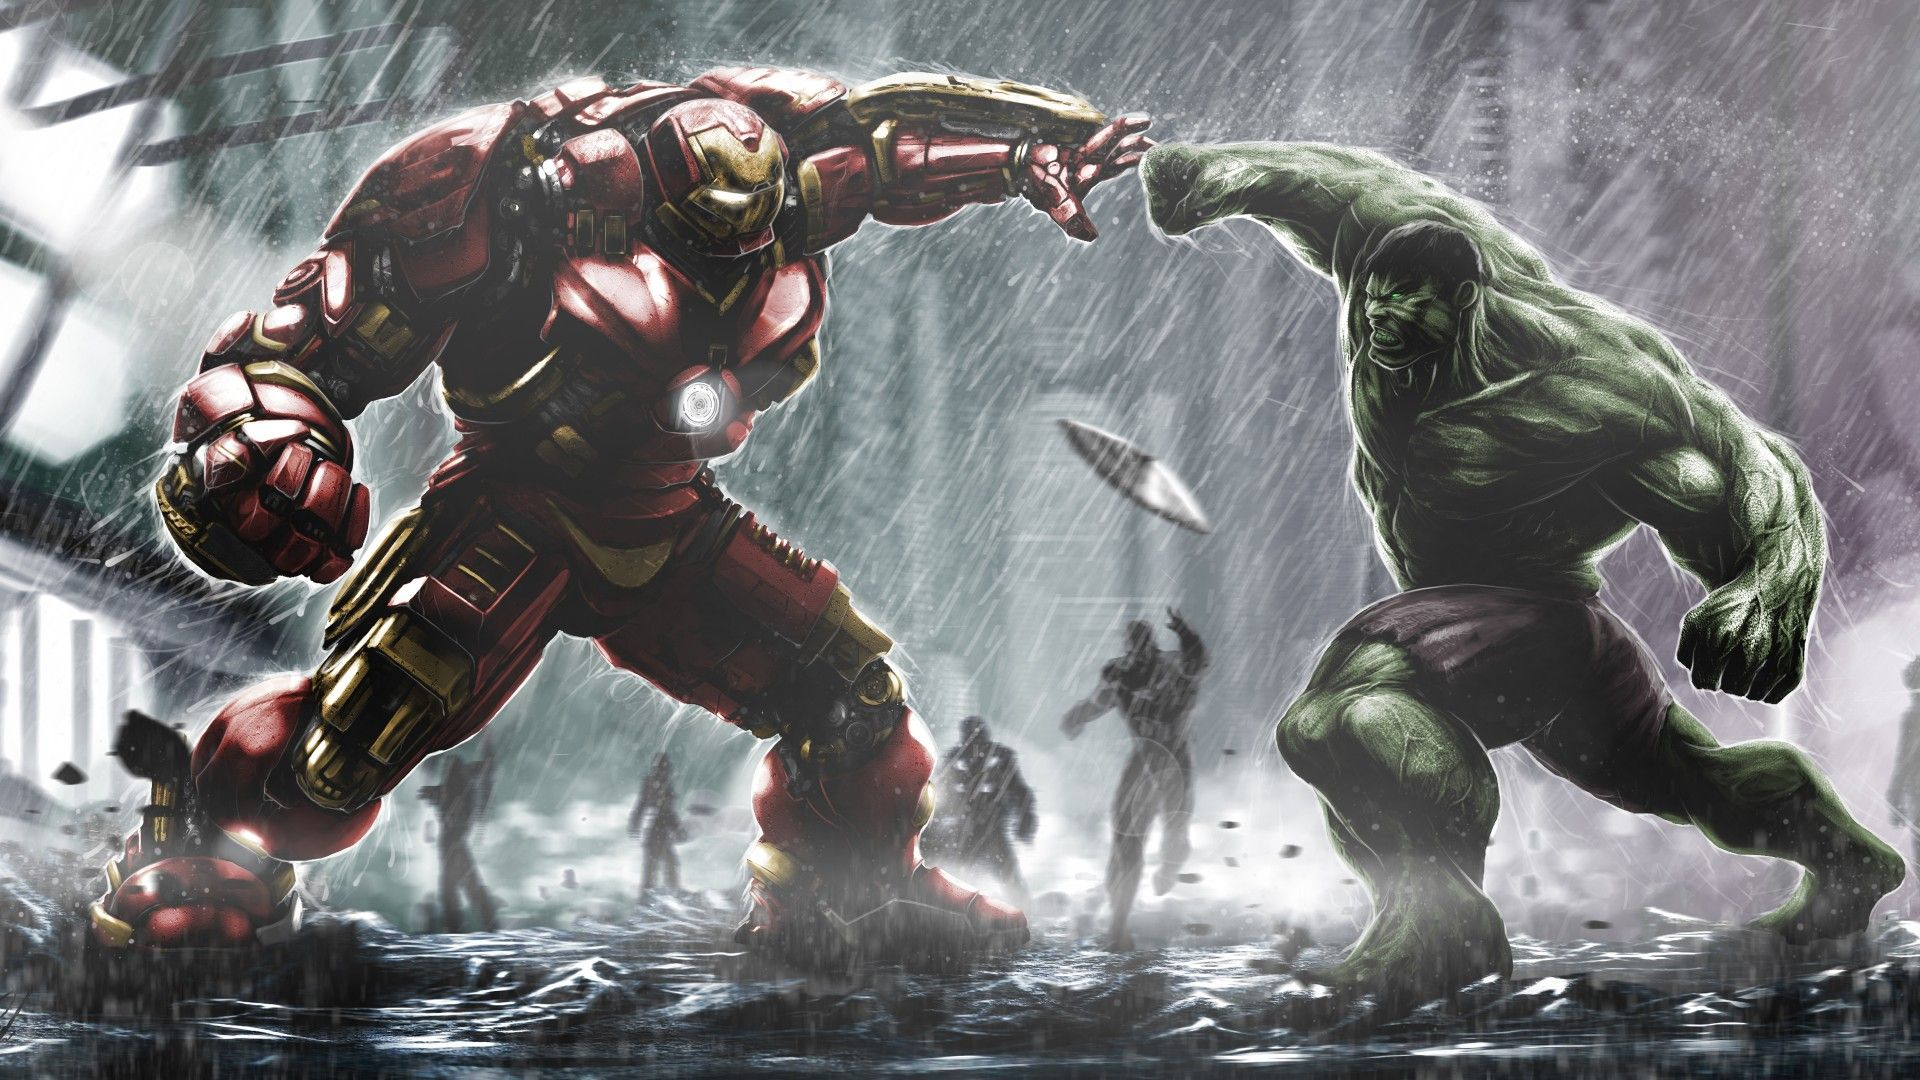 Marvel Hulk Wallpapers Top Free Marvel Hulk Backgrounds